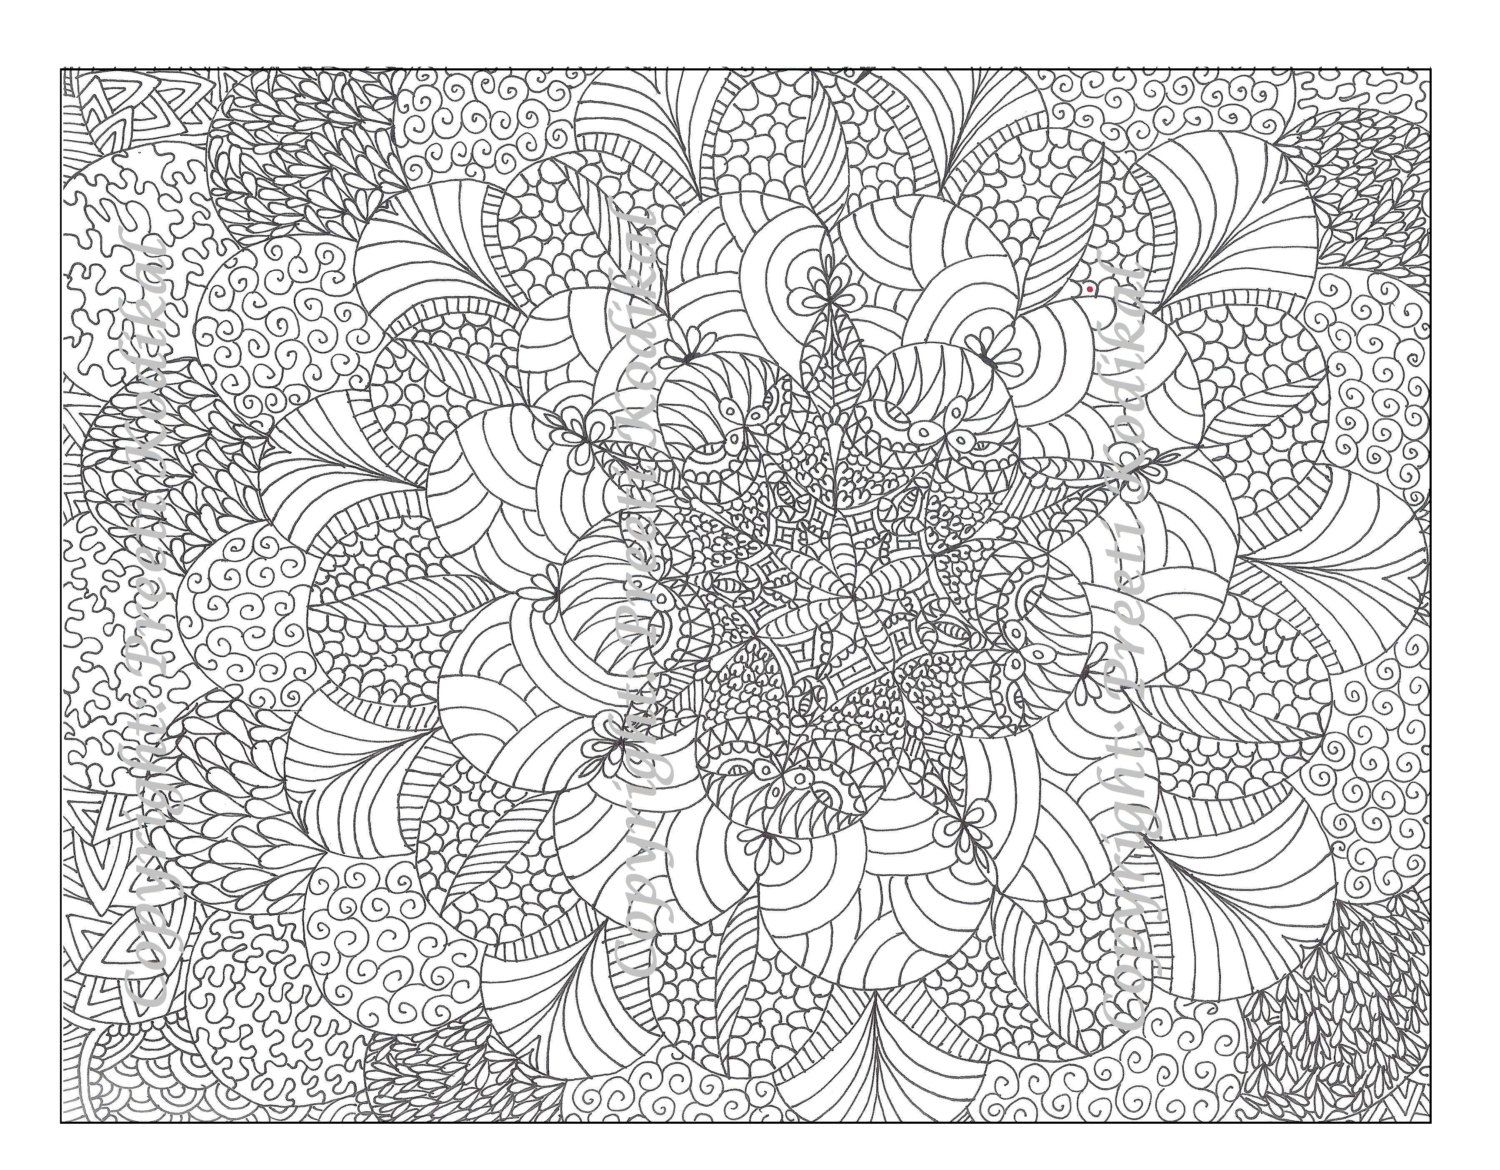 Intricate Design Coloring Pages Coloring Home Design Coloring Pages Printable